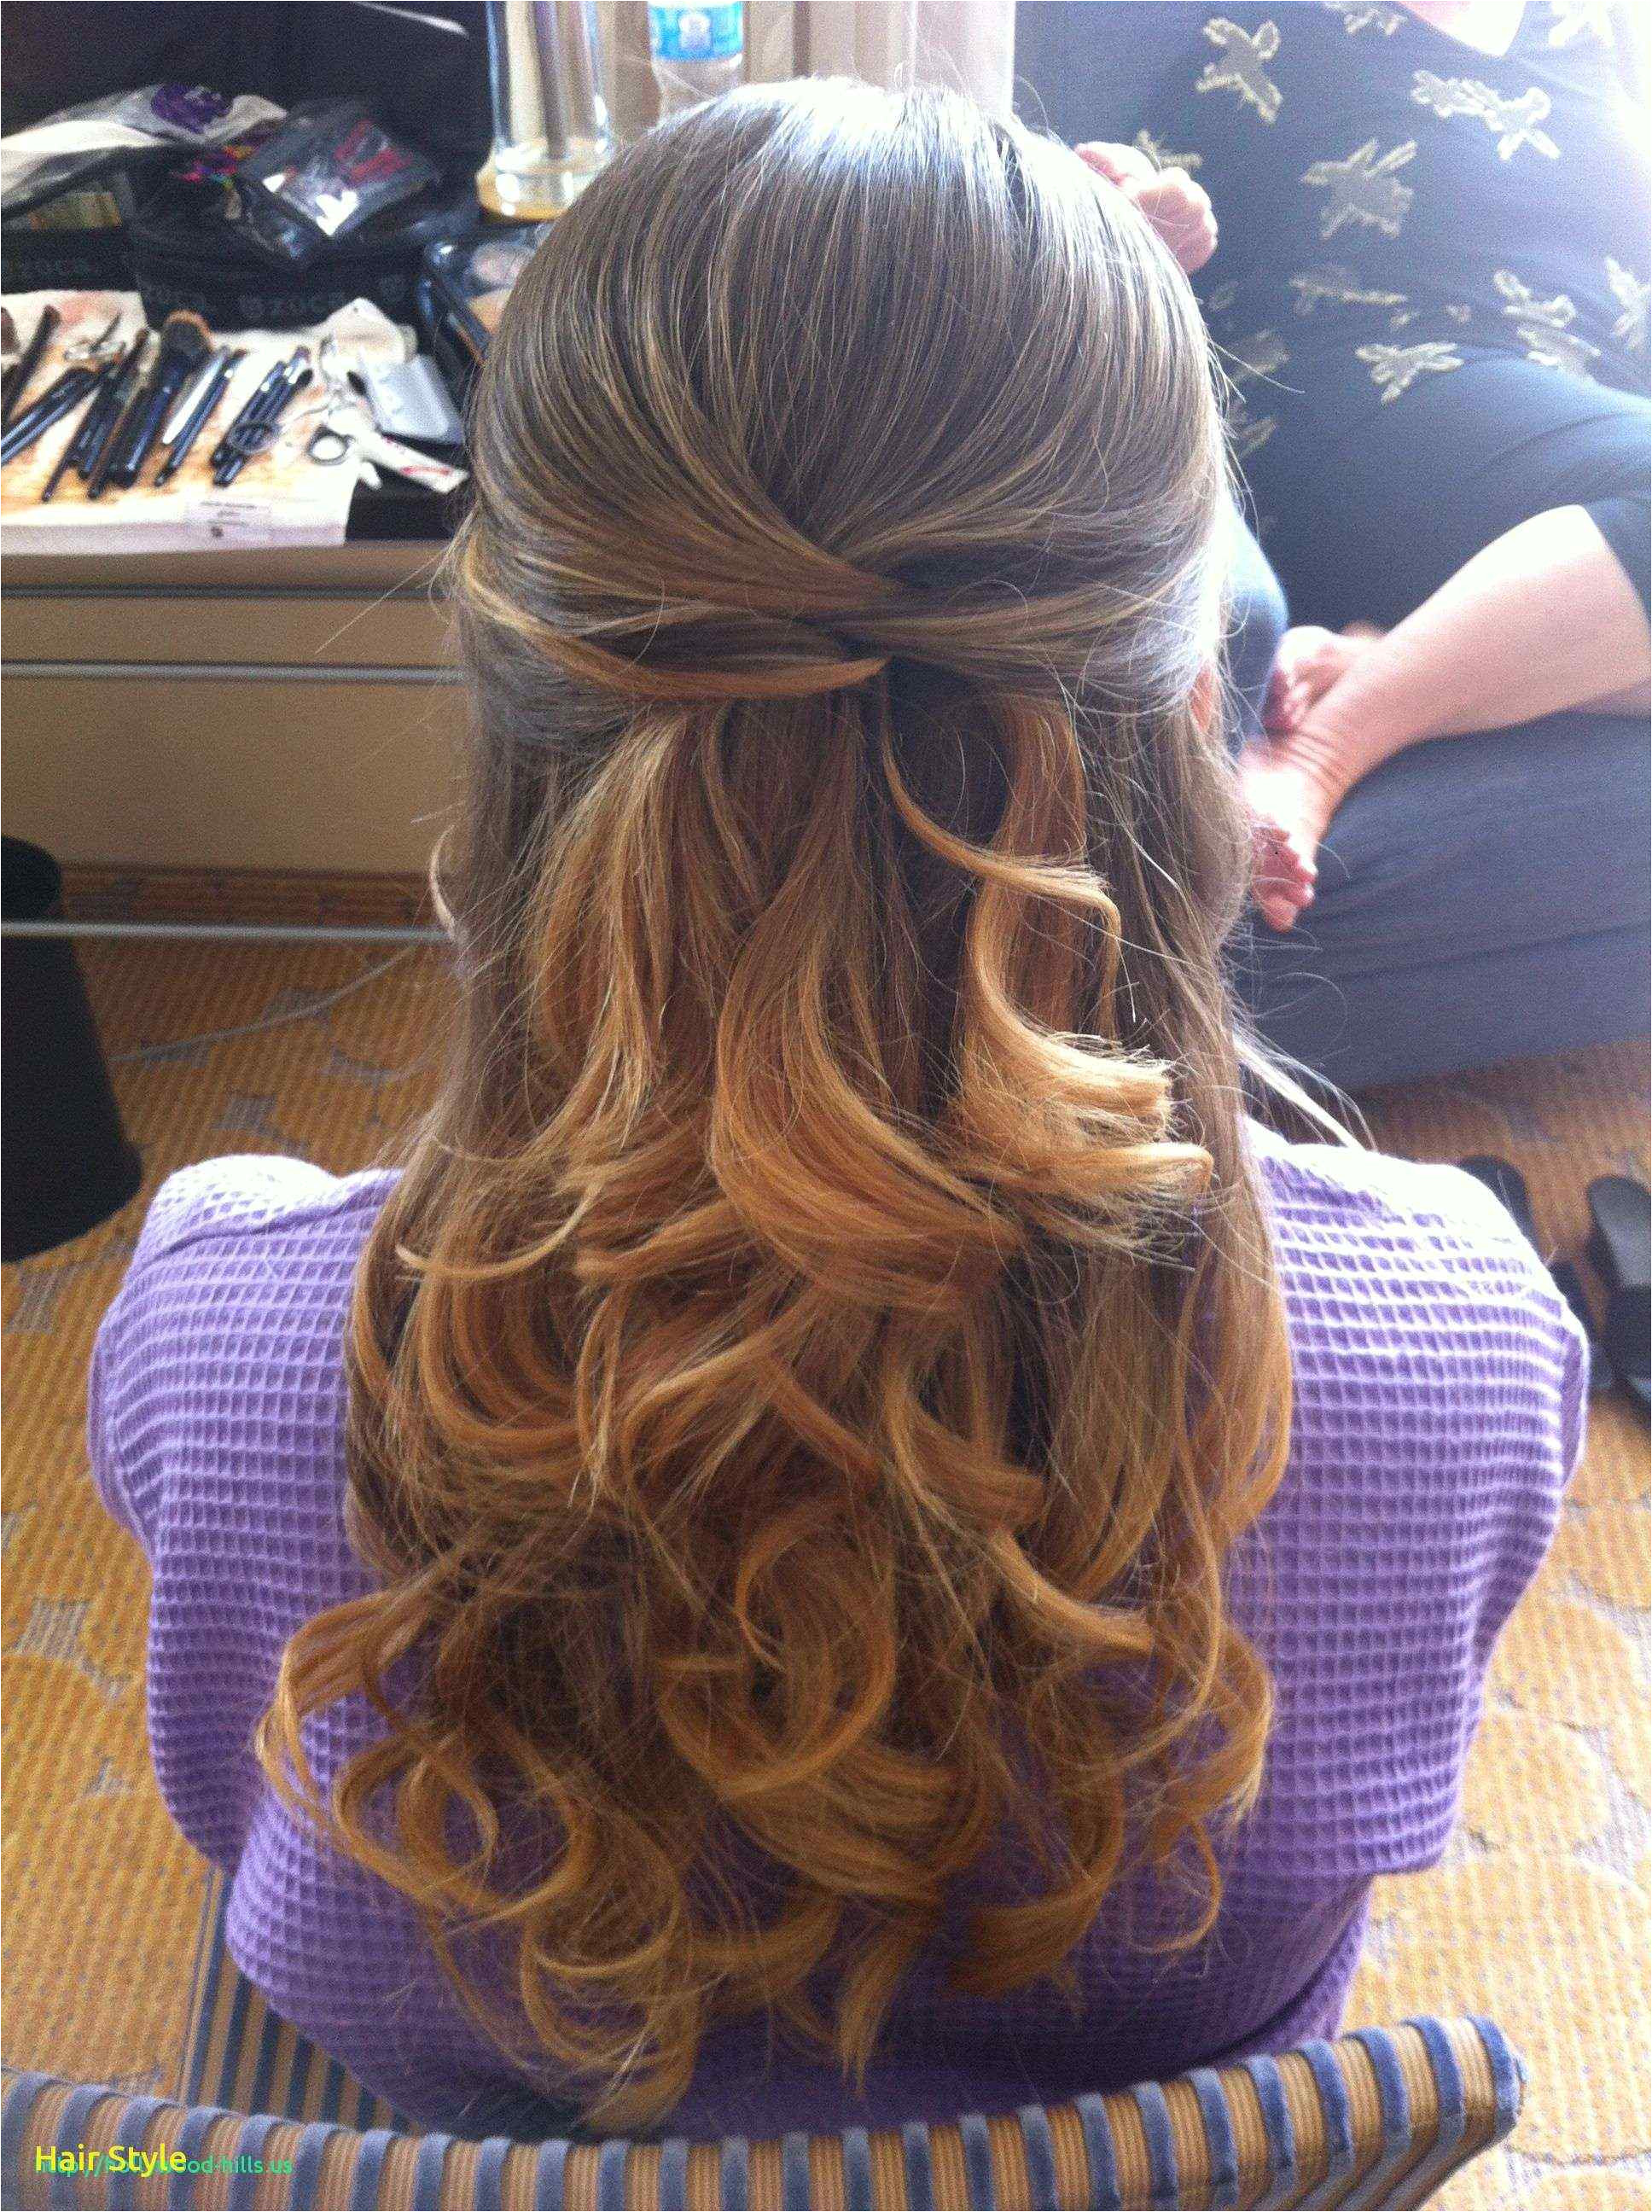 Hair Half Up Half Down Styles Awesome Hairstyles for Long Hair Bridal Half Up Half Down